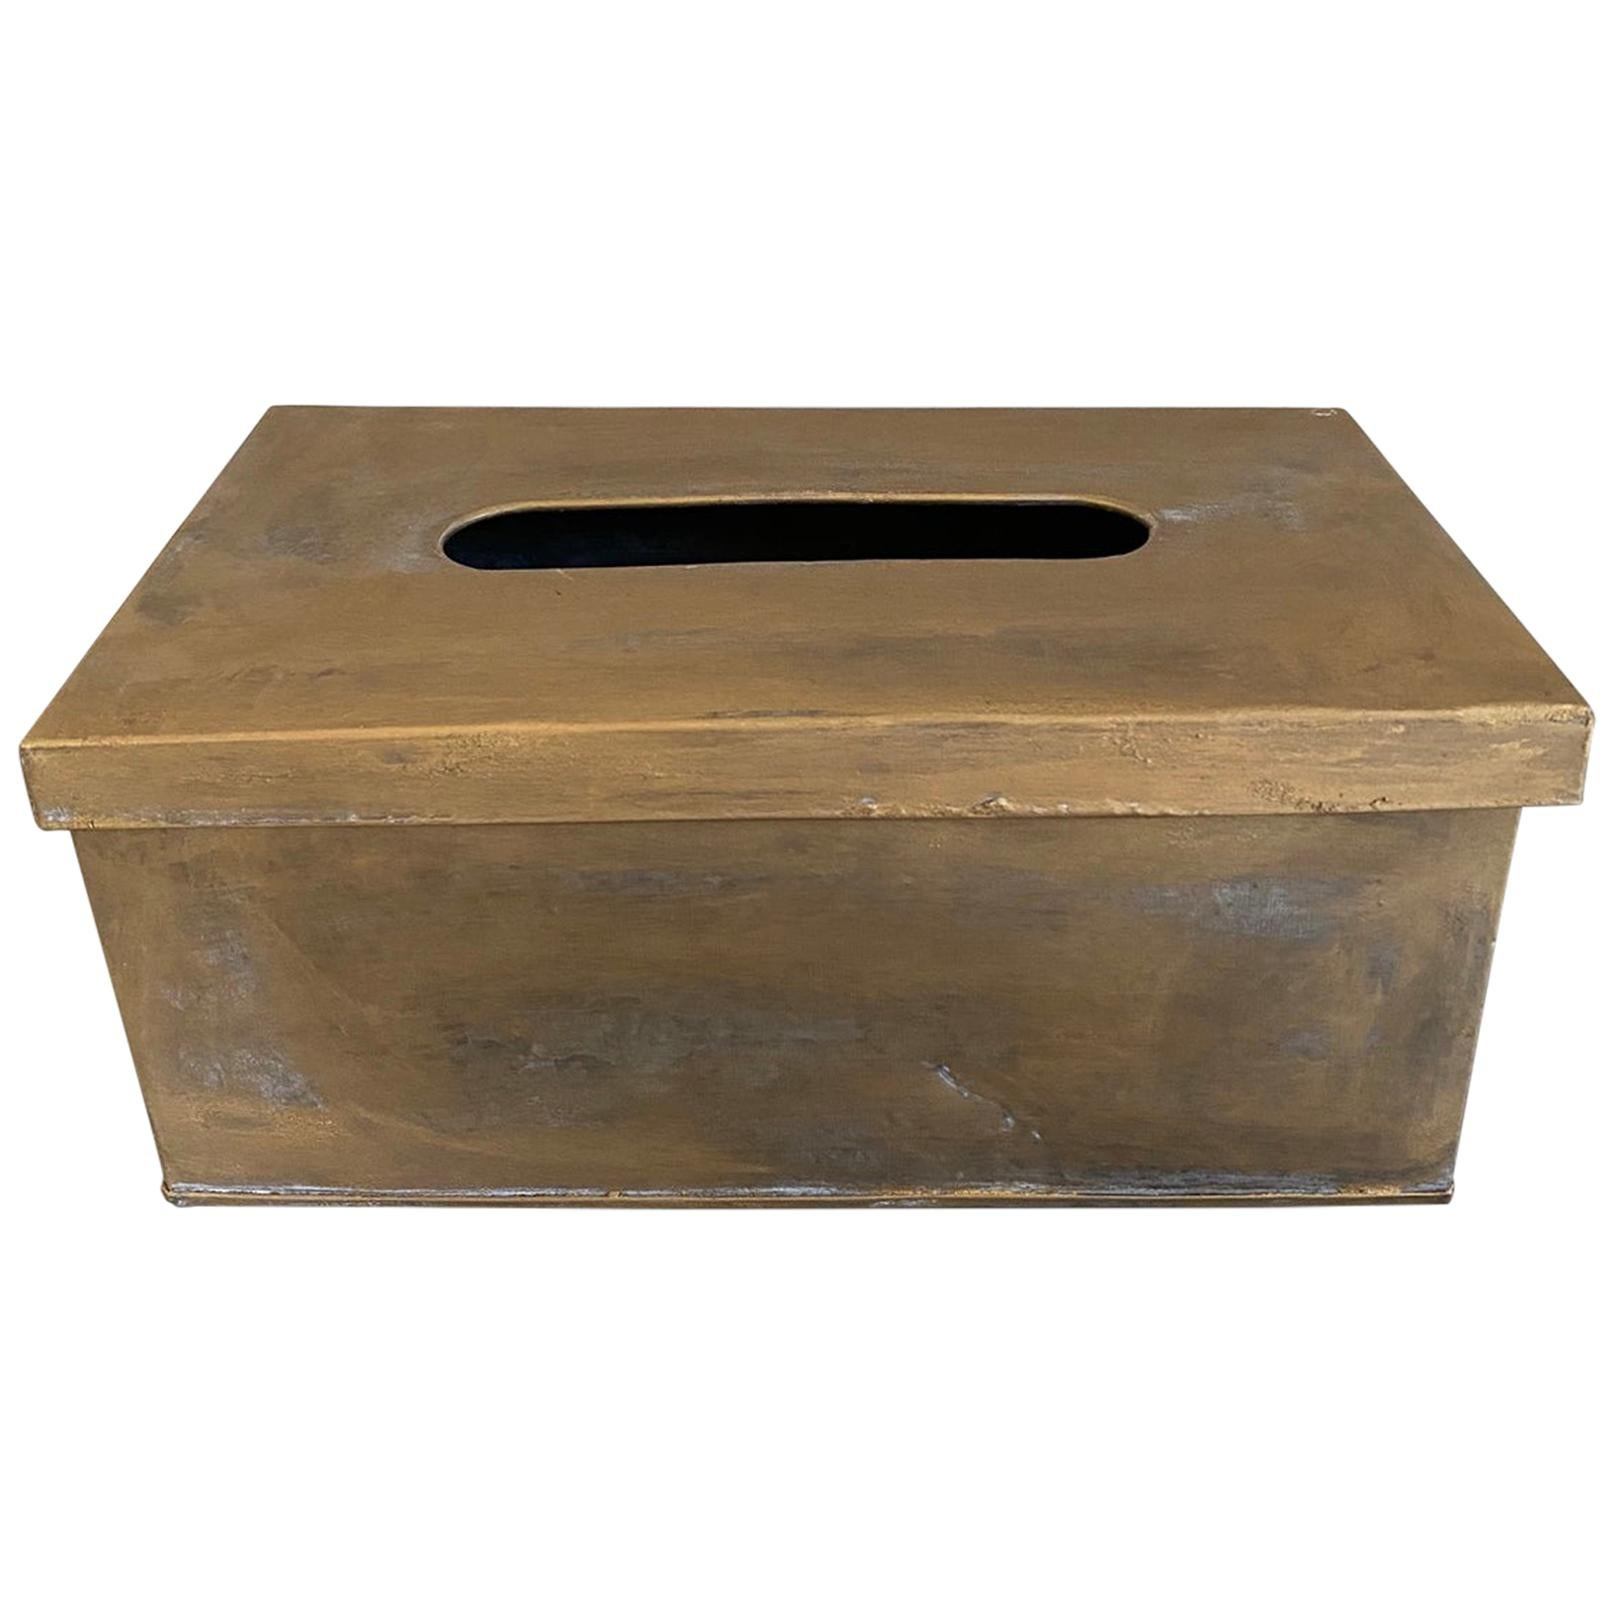 Gold Toned Metal Tissue Box